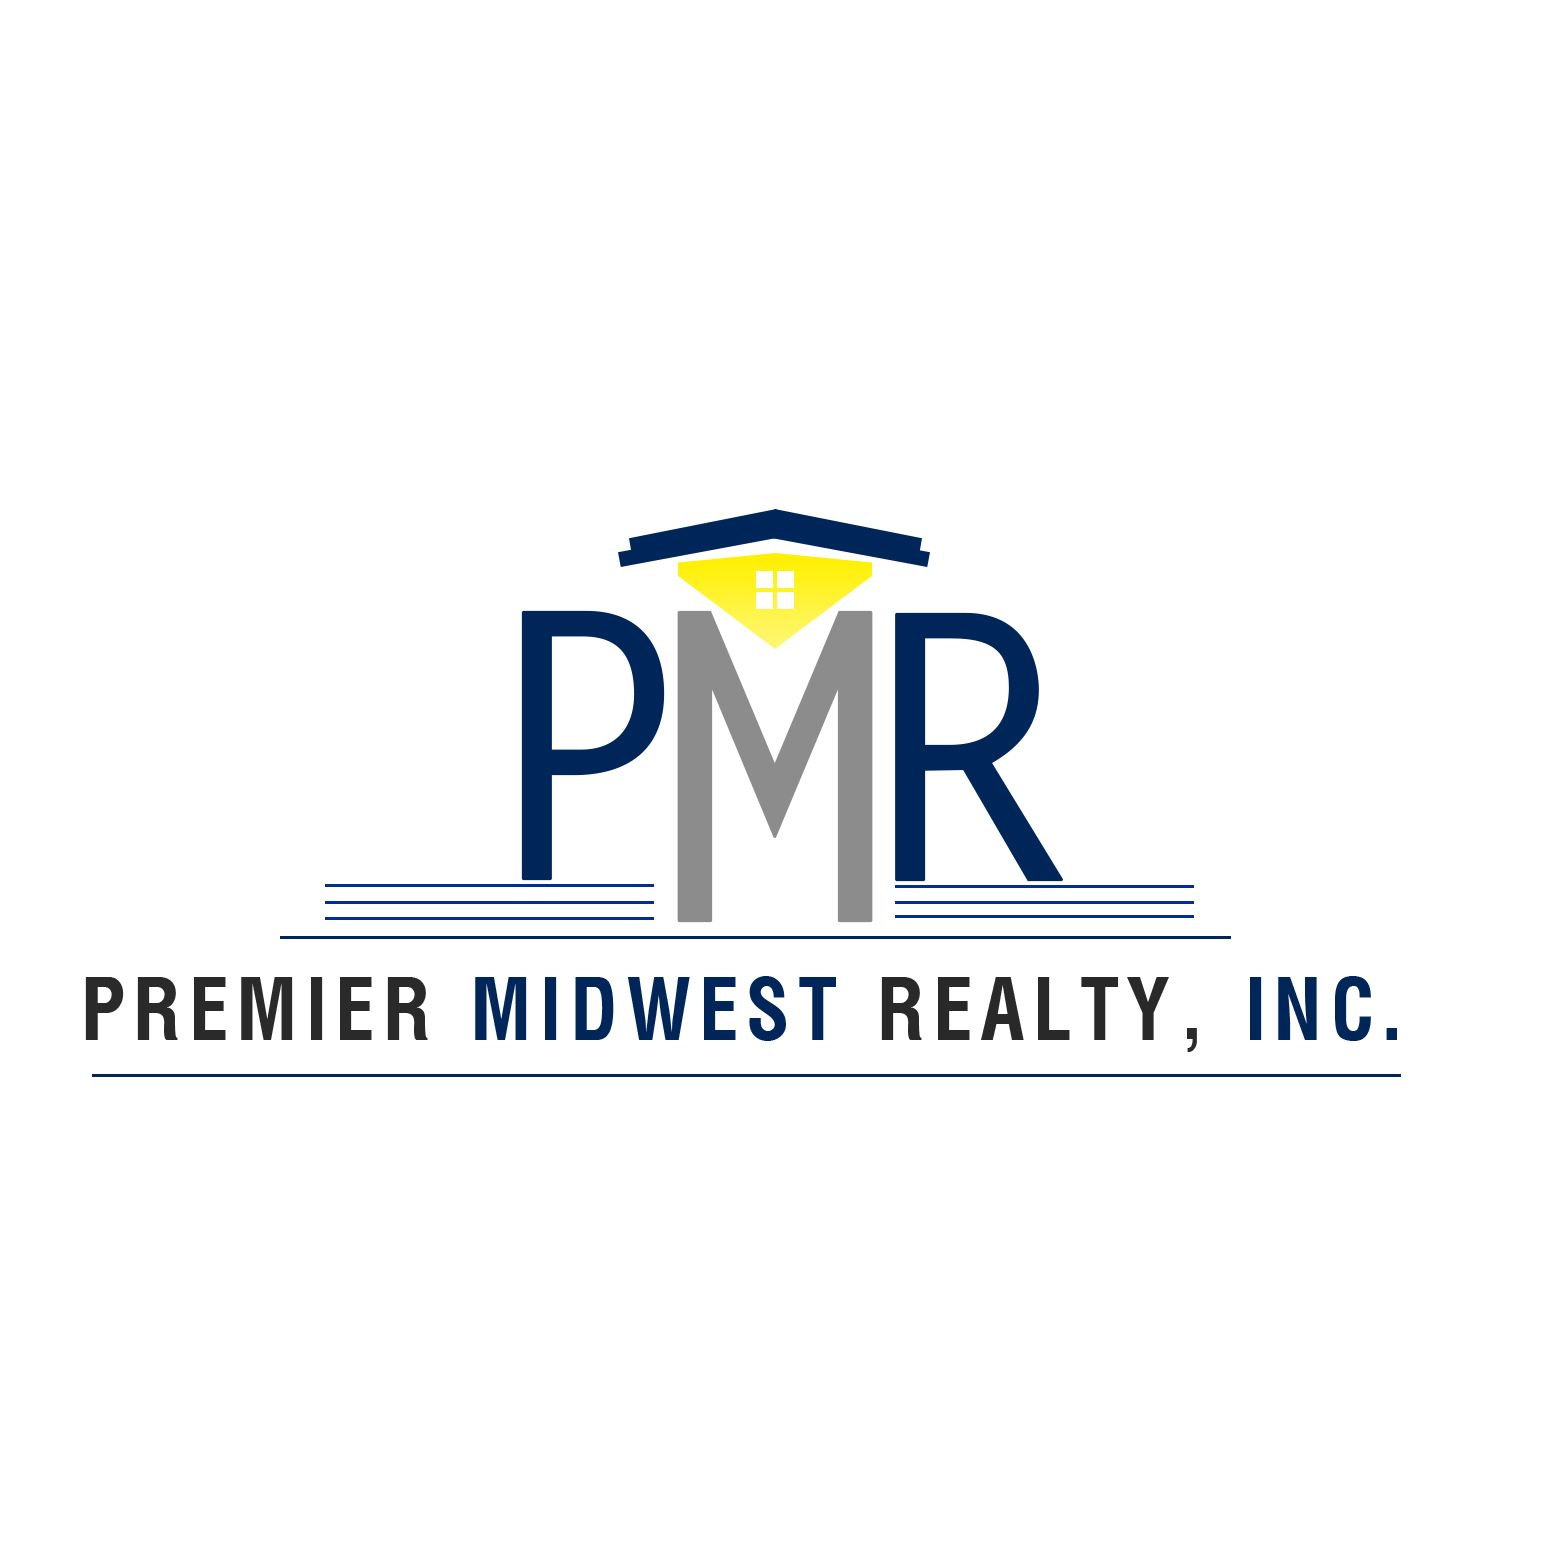 Premier Midwest Realty, Inc